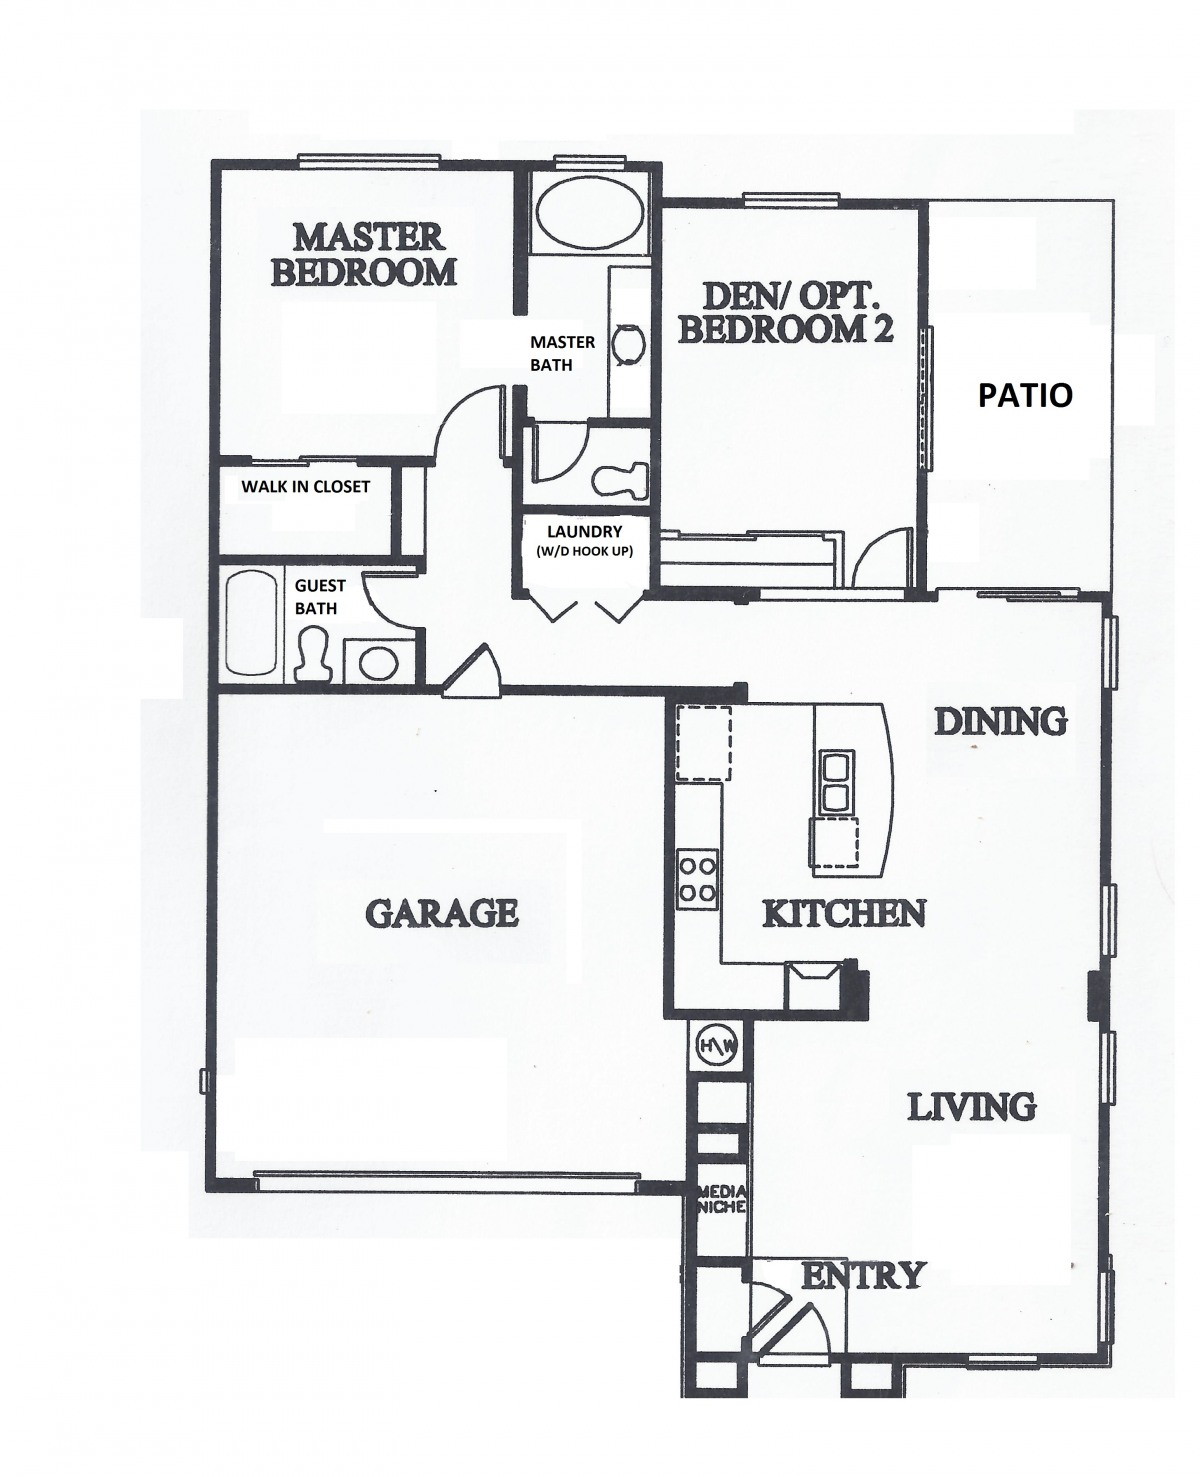 rent ca section 8 pictures on 2 bedroom house for rent section 8 in